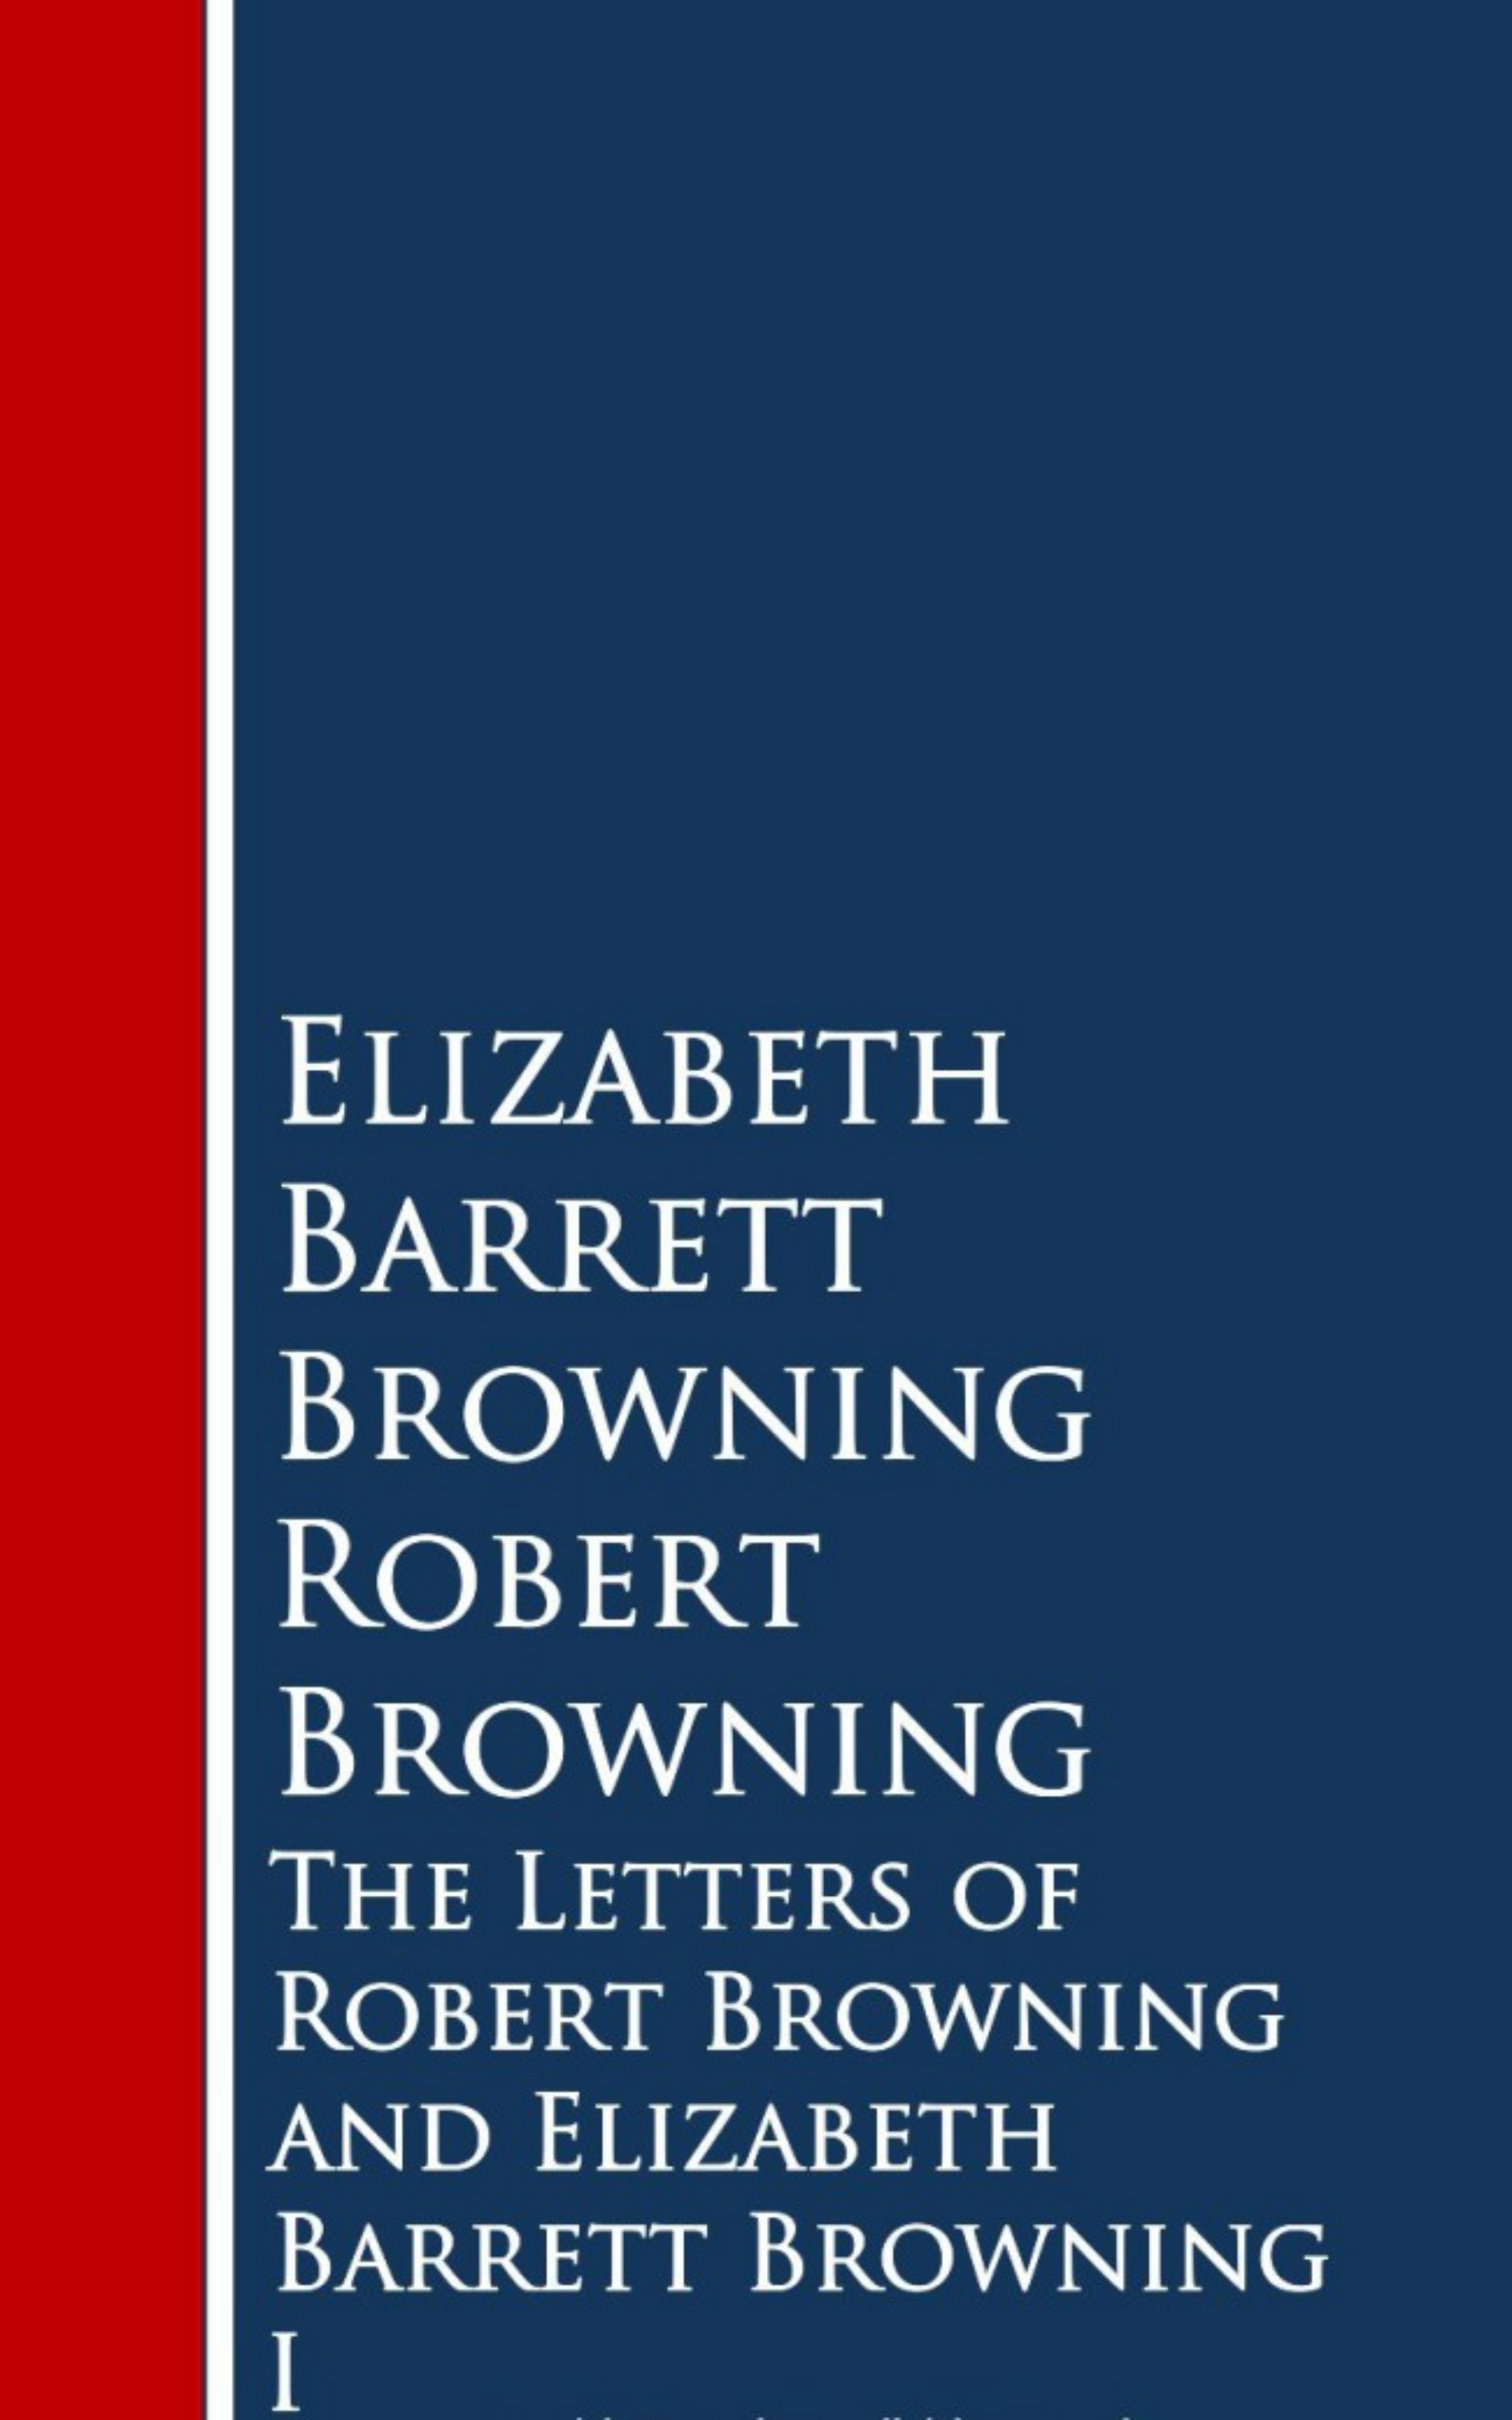 цена на Robert Browning The Letters of Robert Browning and Elizabeth Barrng